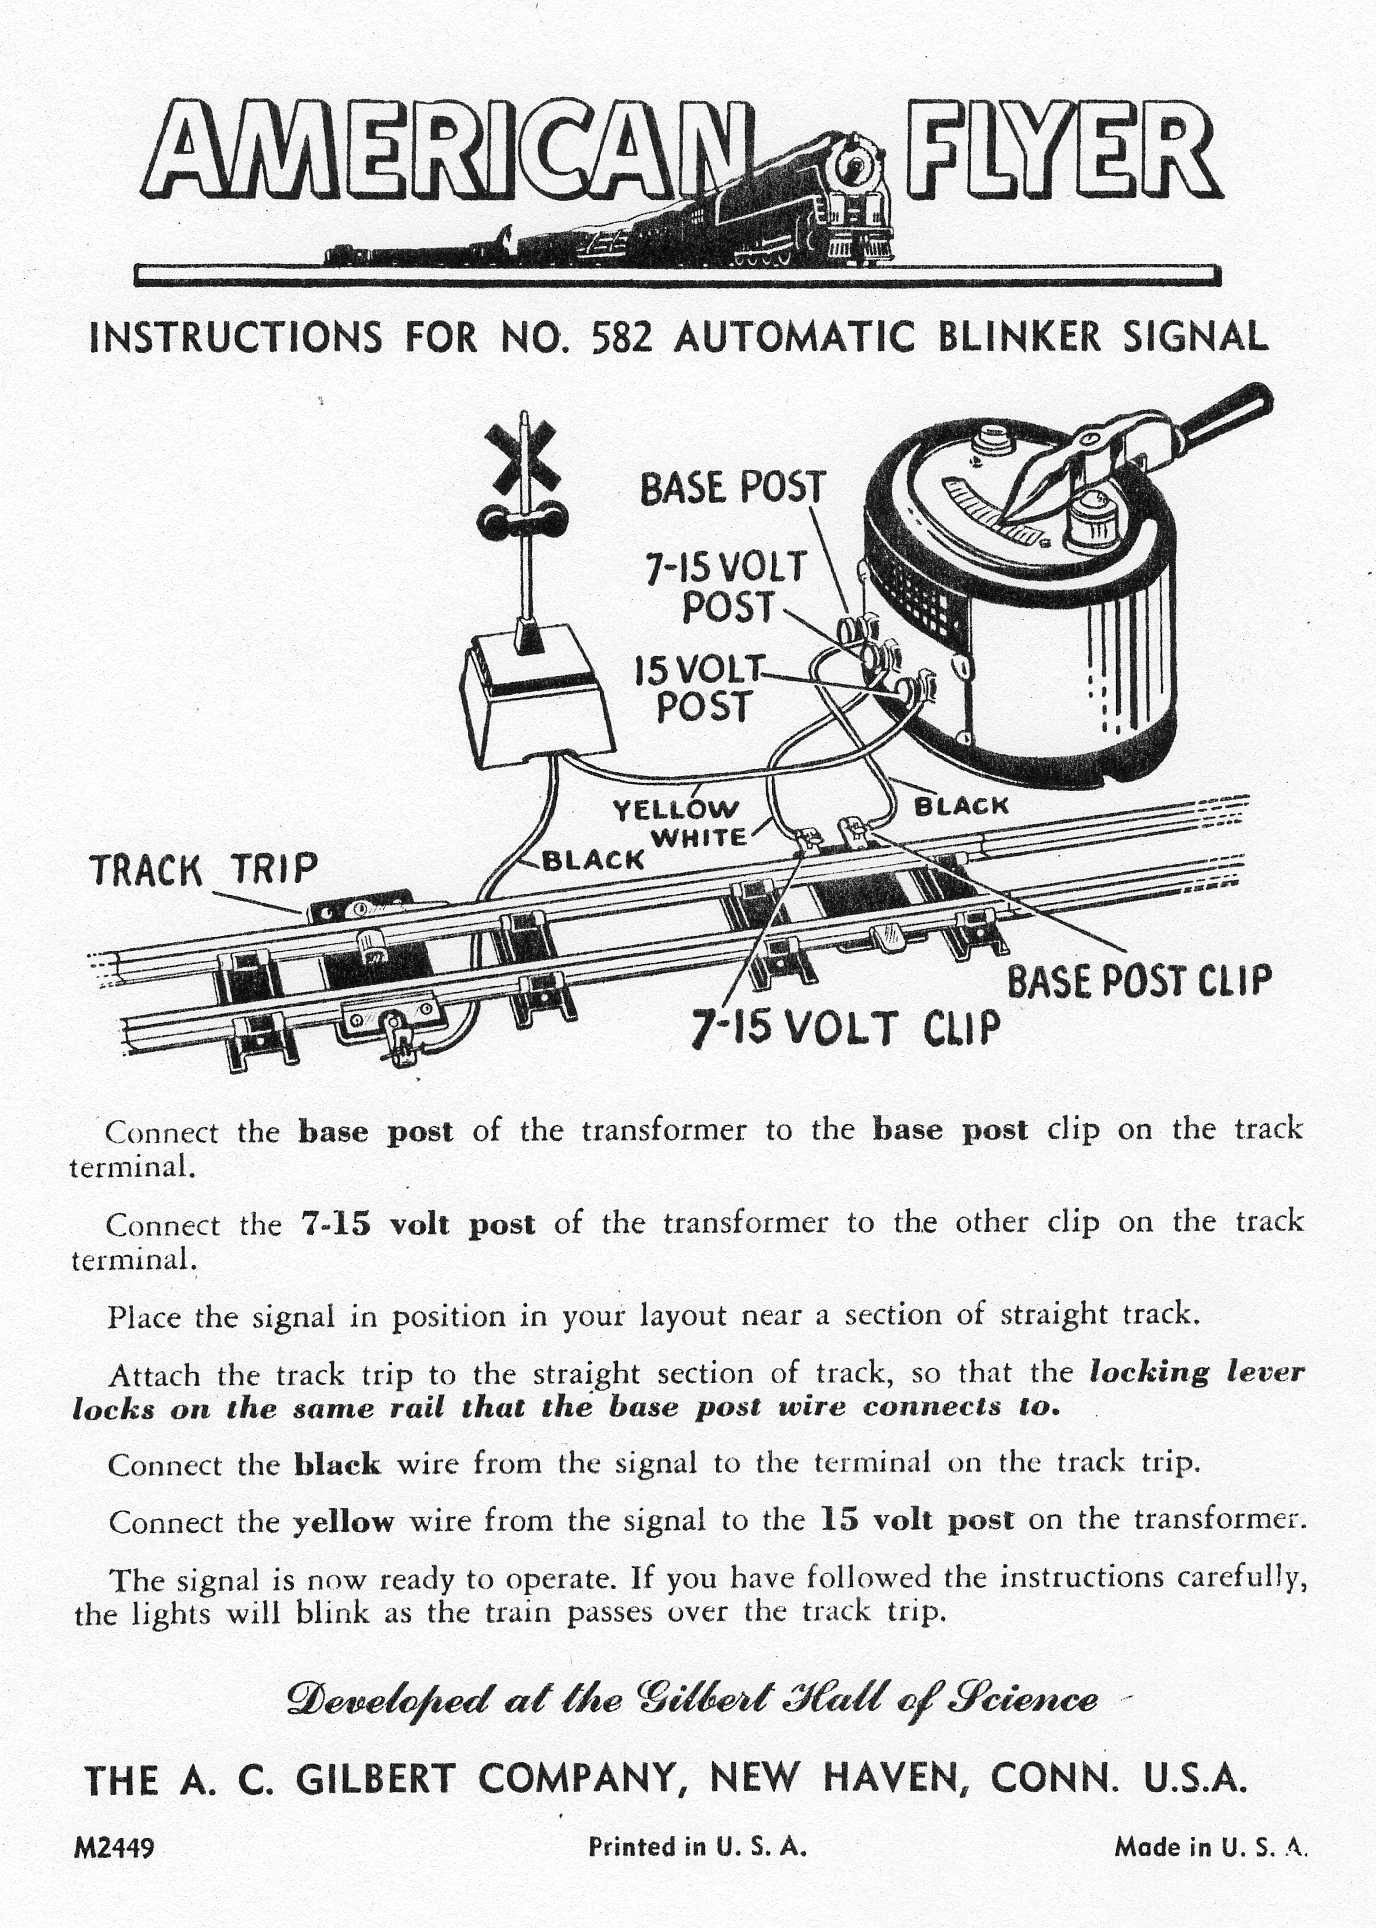 Instructions for No. 582 Automatic Blinker Signal